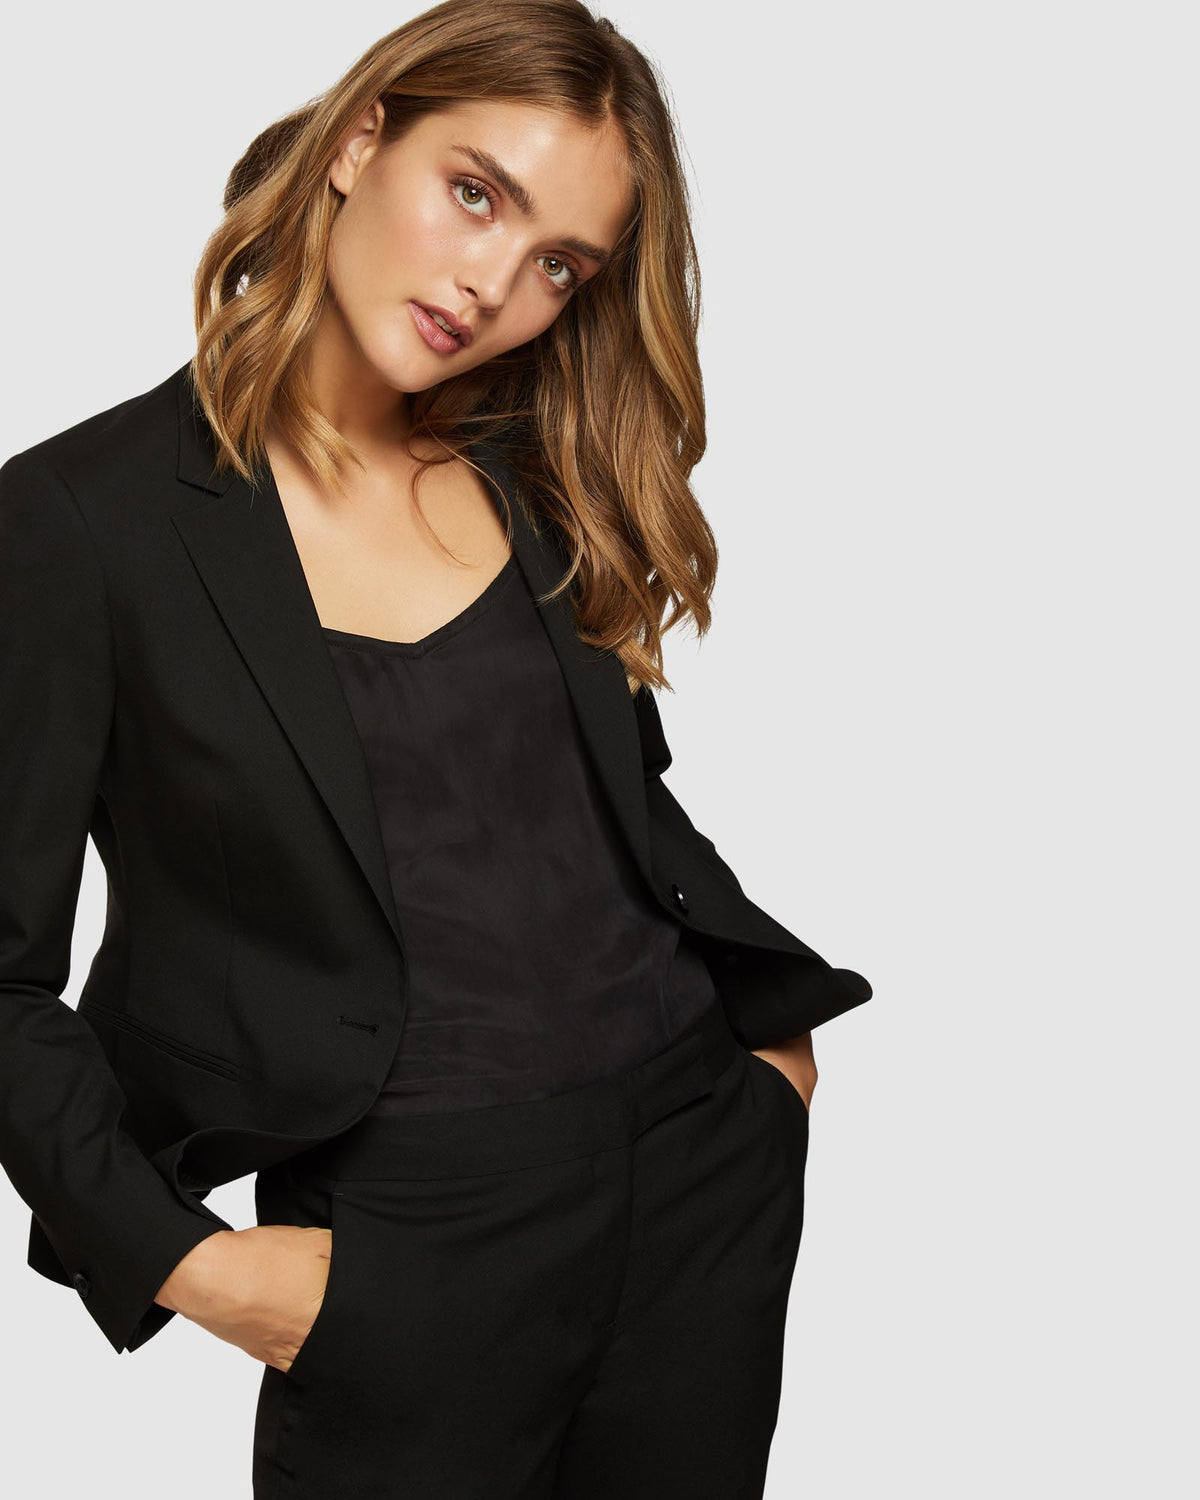 CHICA ECO BLACK SUIT JACKET BLACK